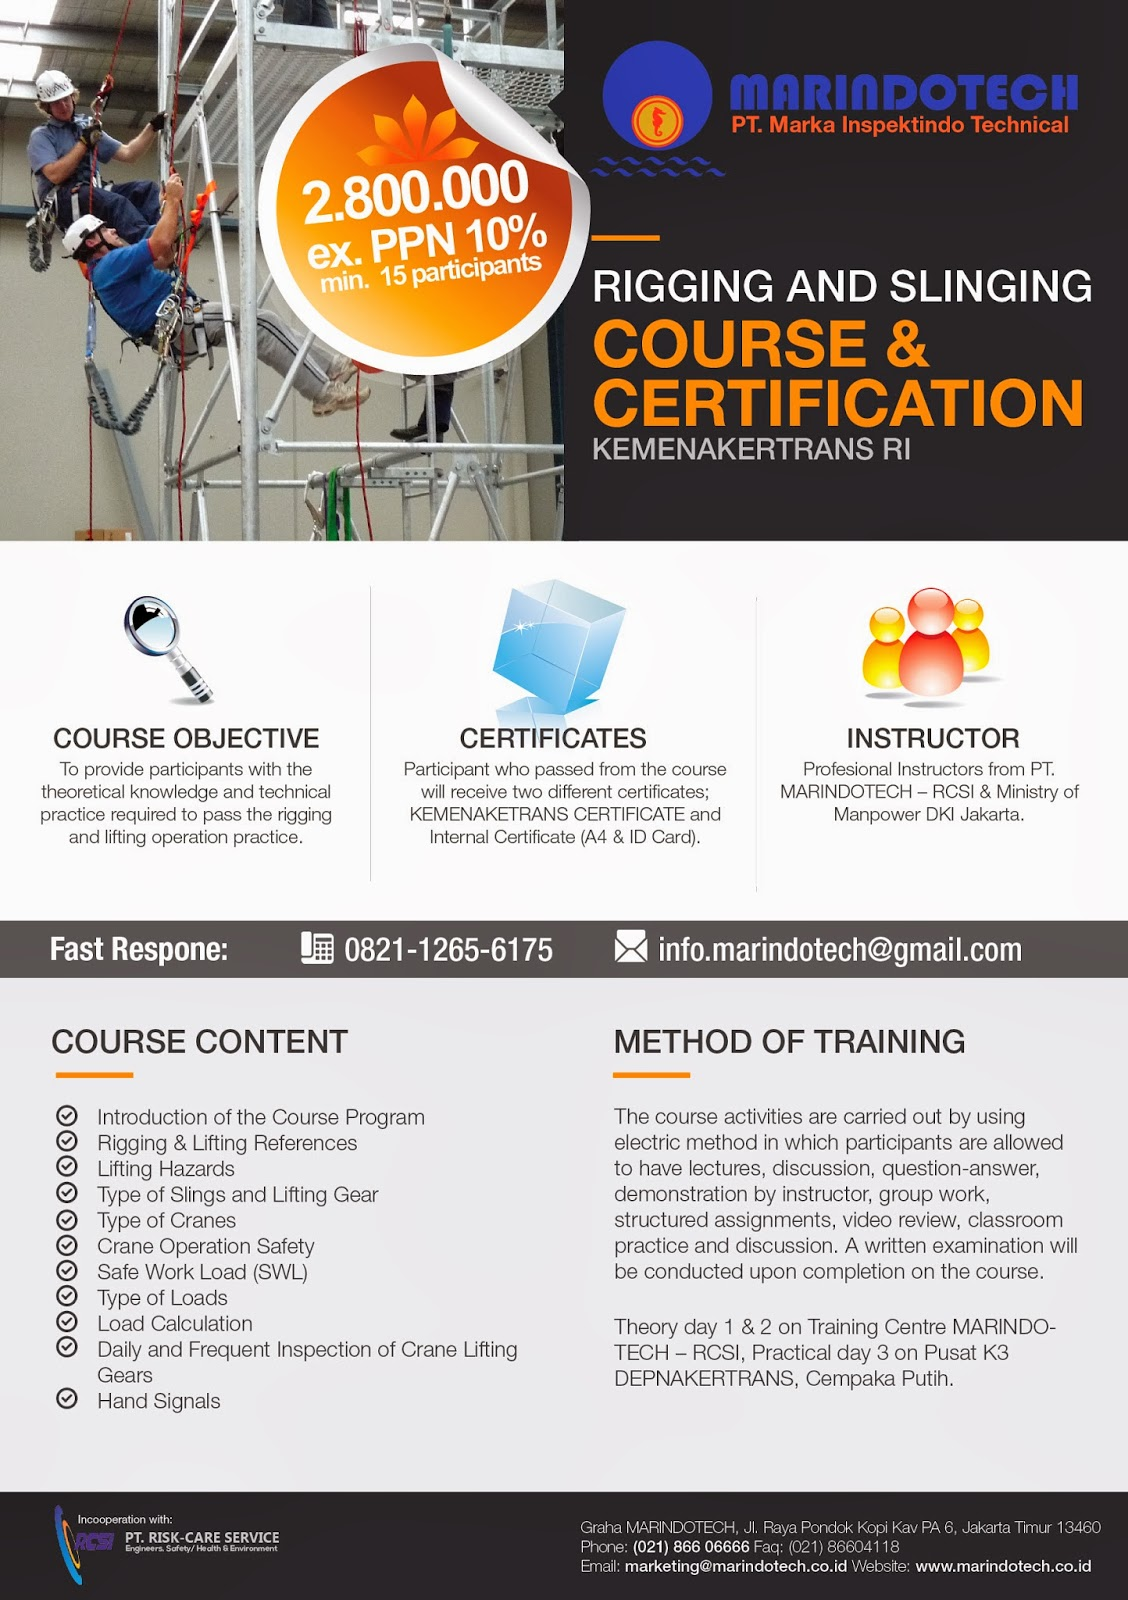 Rigging and slinging course certification kemenakertrans rcsi training hse training hse 1betcityfo Image collections